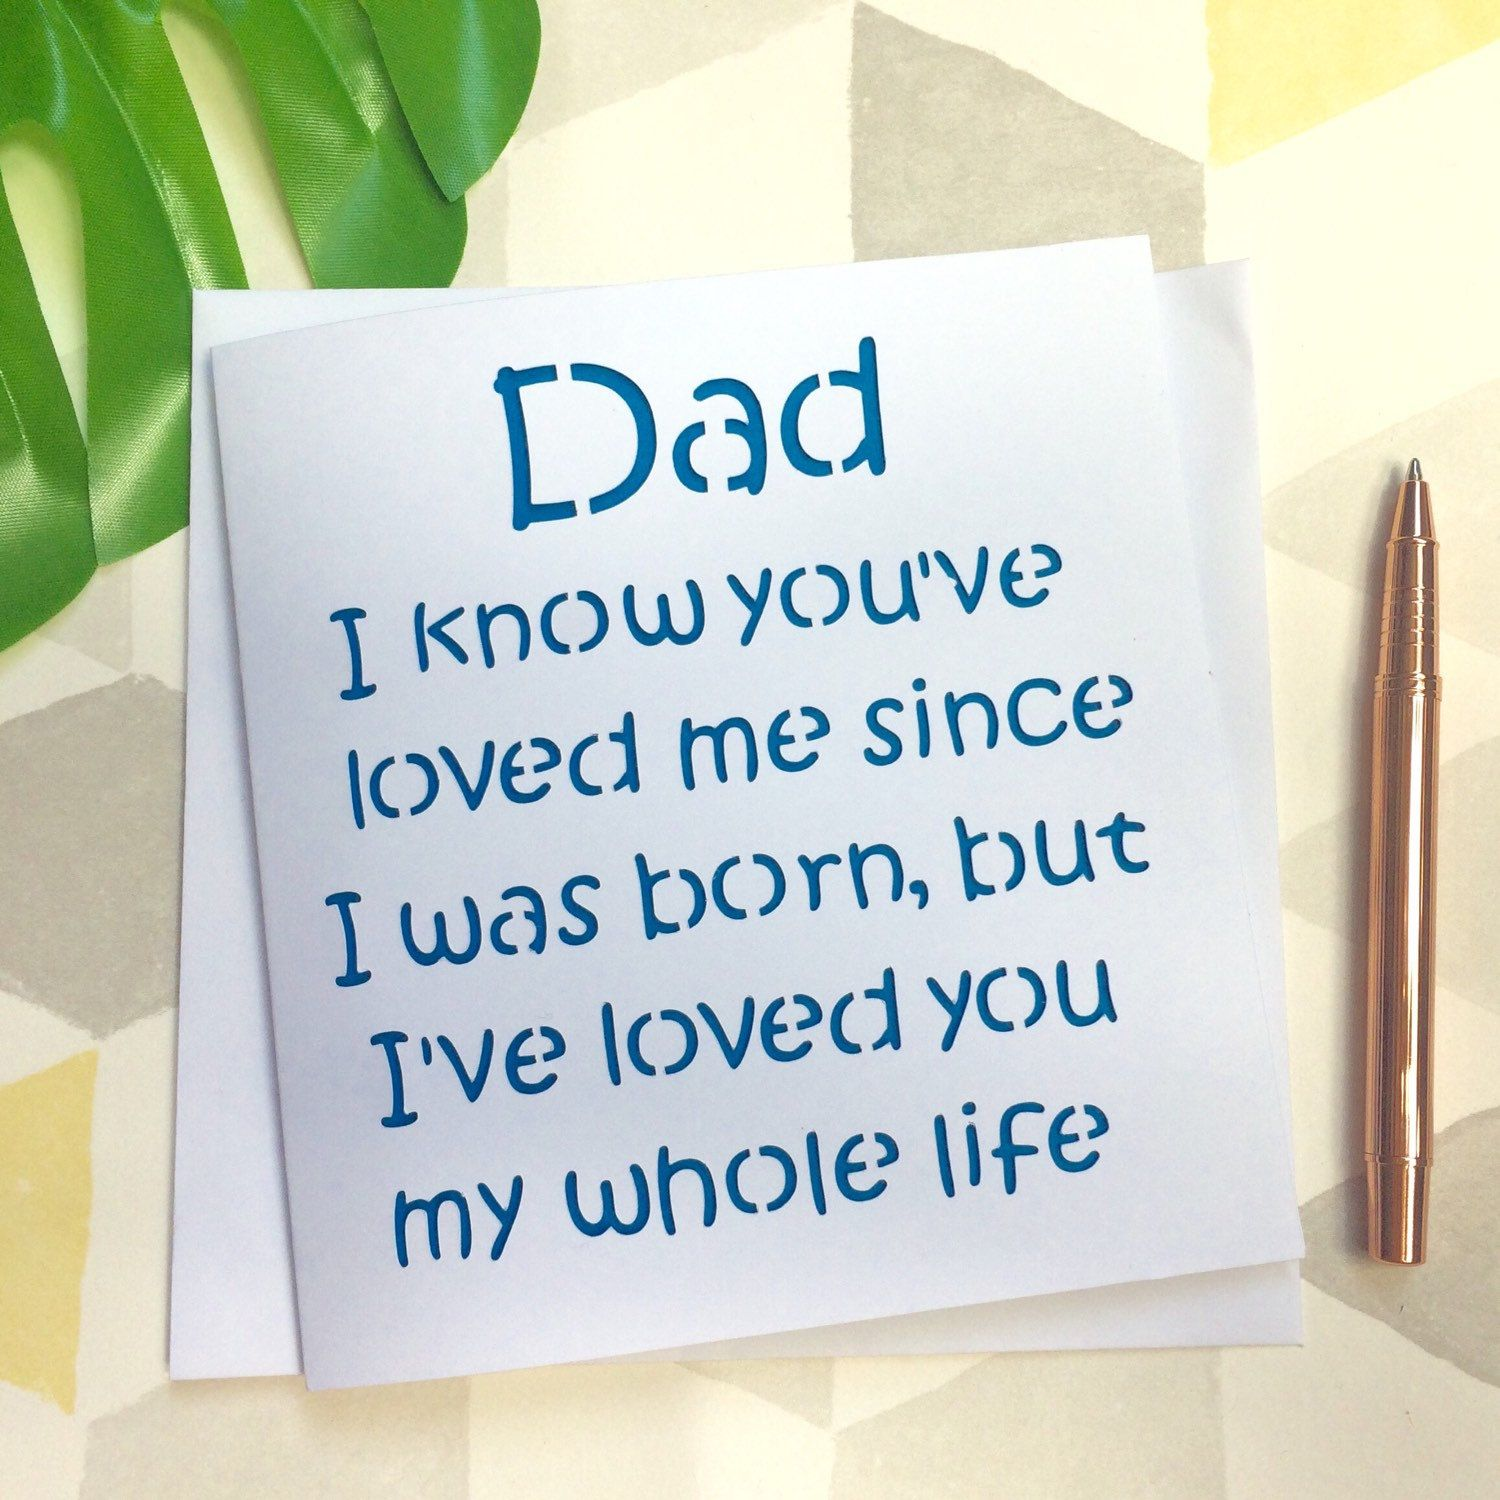 2019 year style- Cards day Fathers sayings pictures